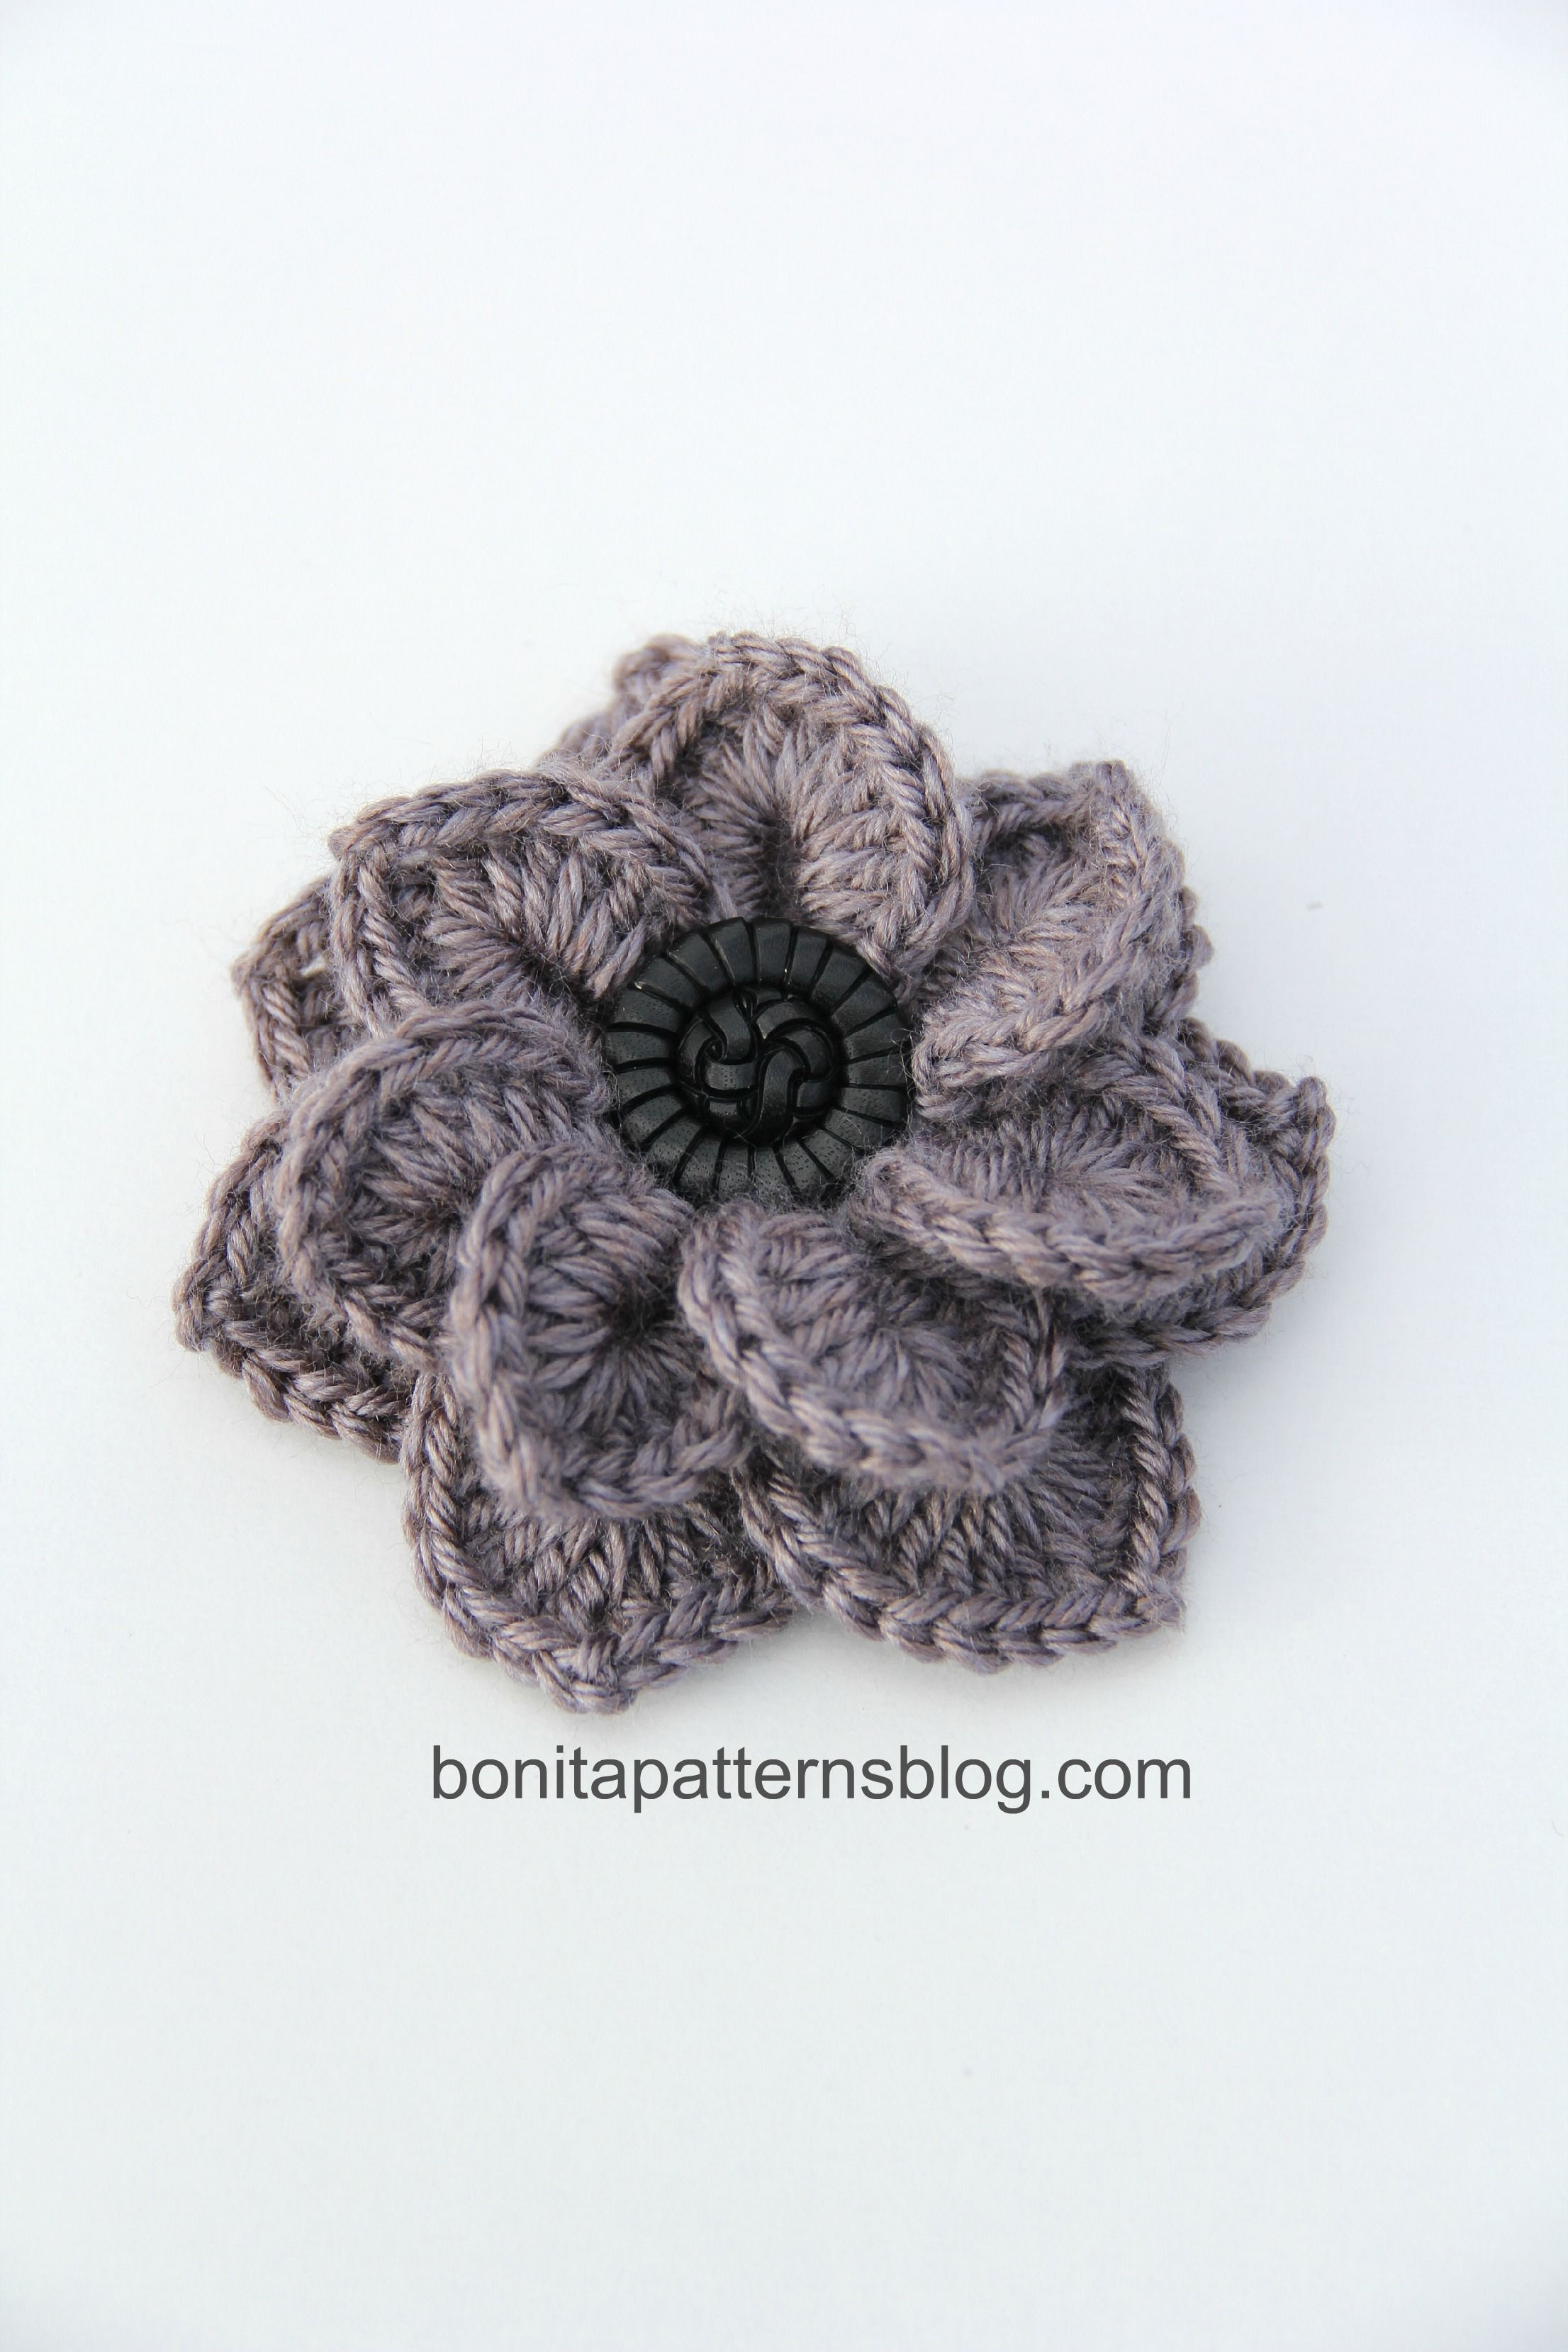 pin work brooch crochet crocheted my brooches pinterest